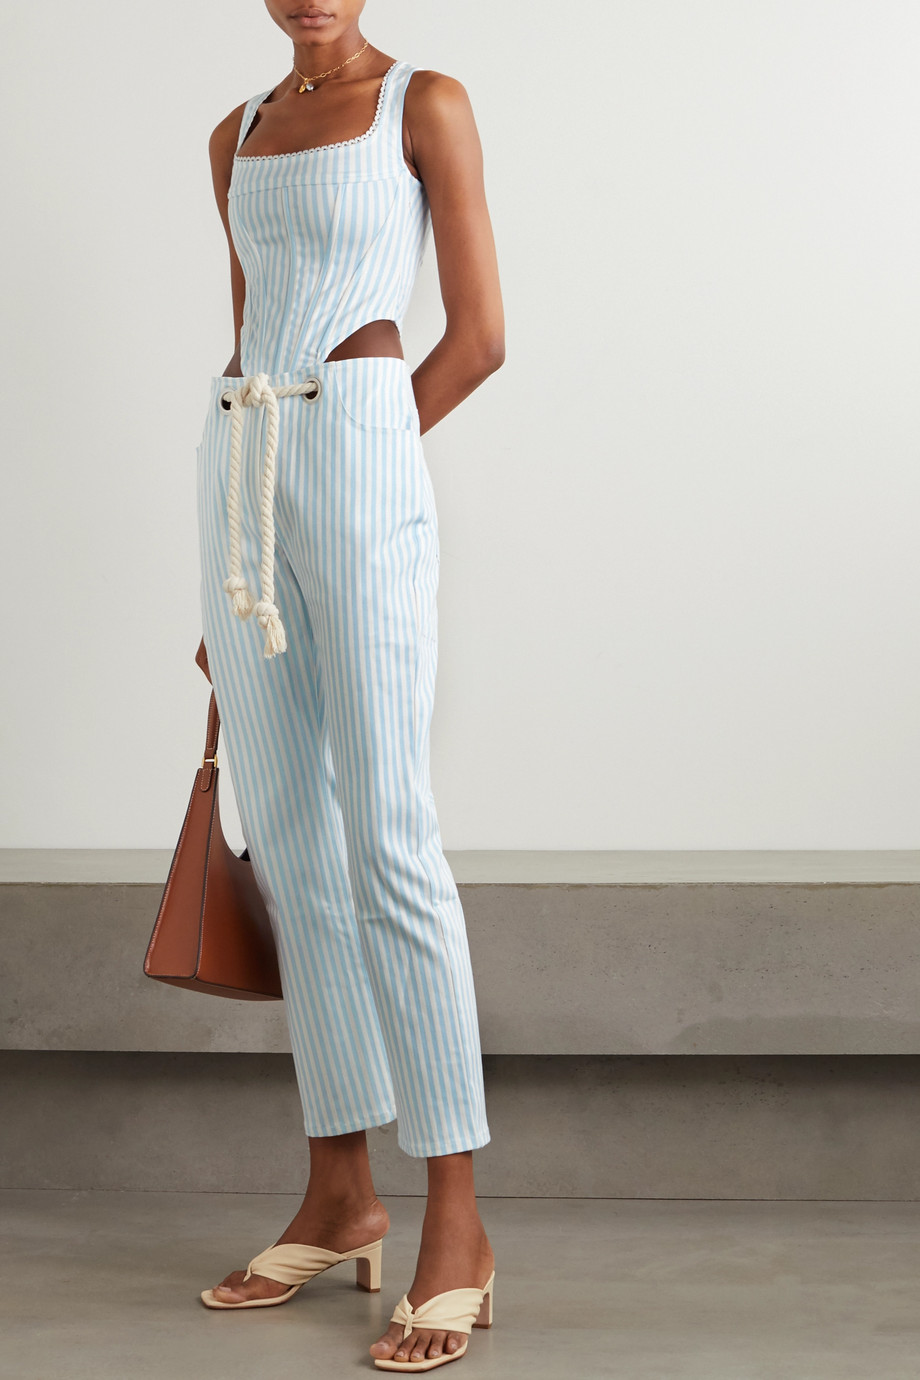 Miaou Campbell lace-trimmed striped denim bustier top